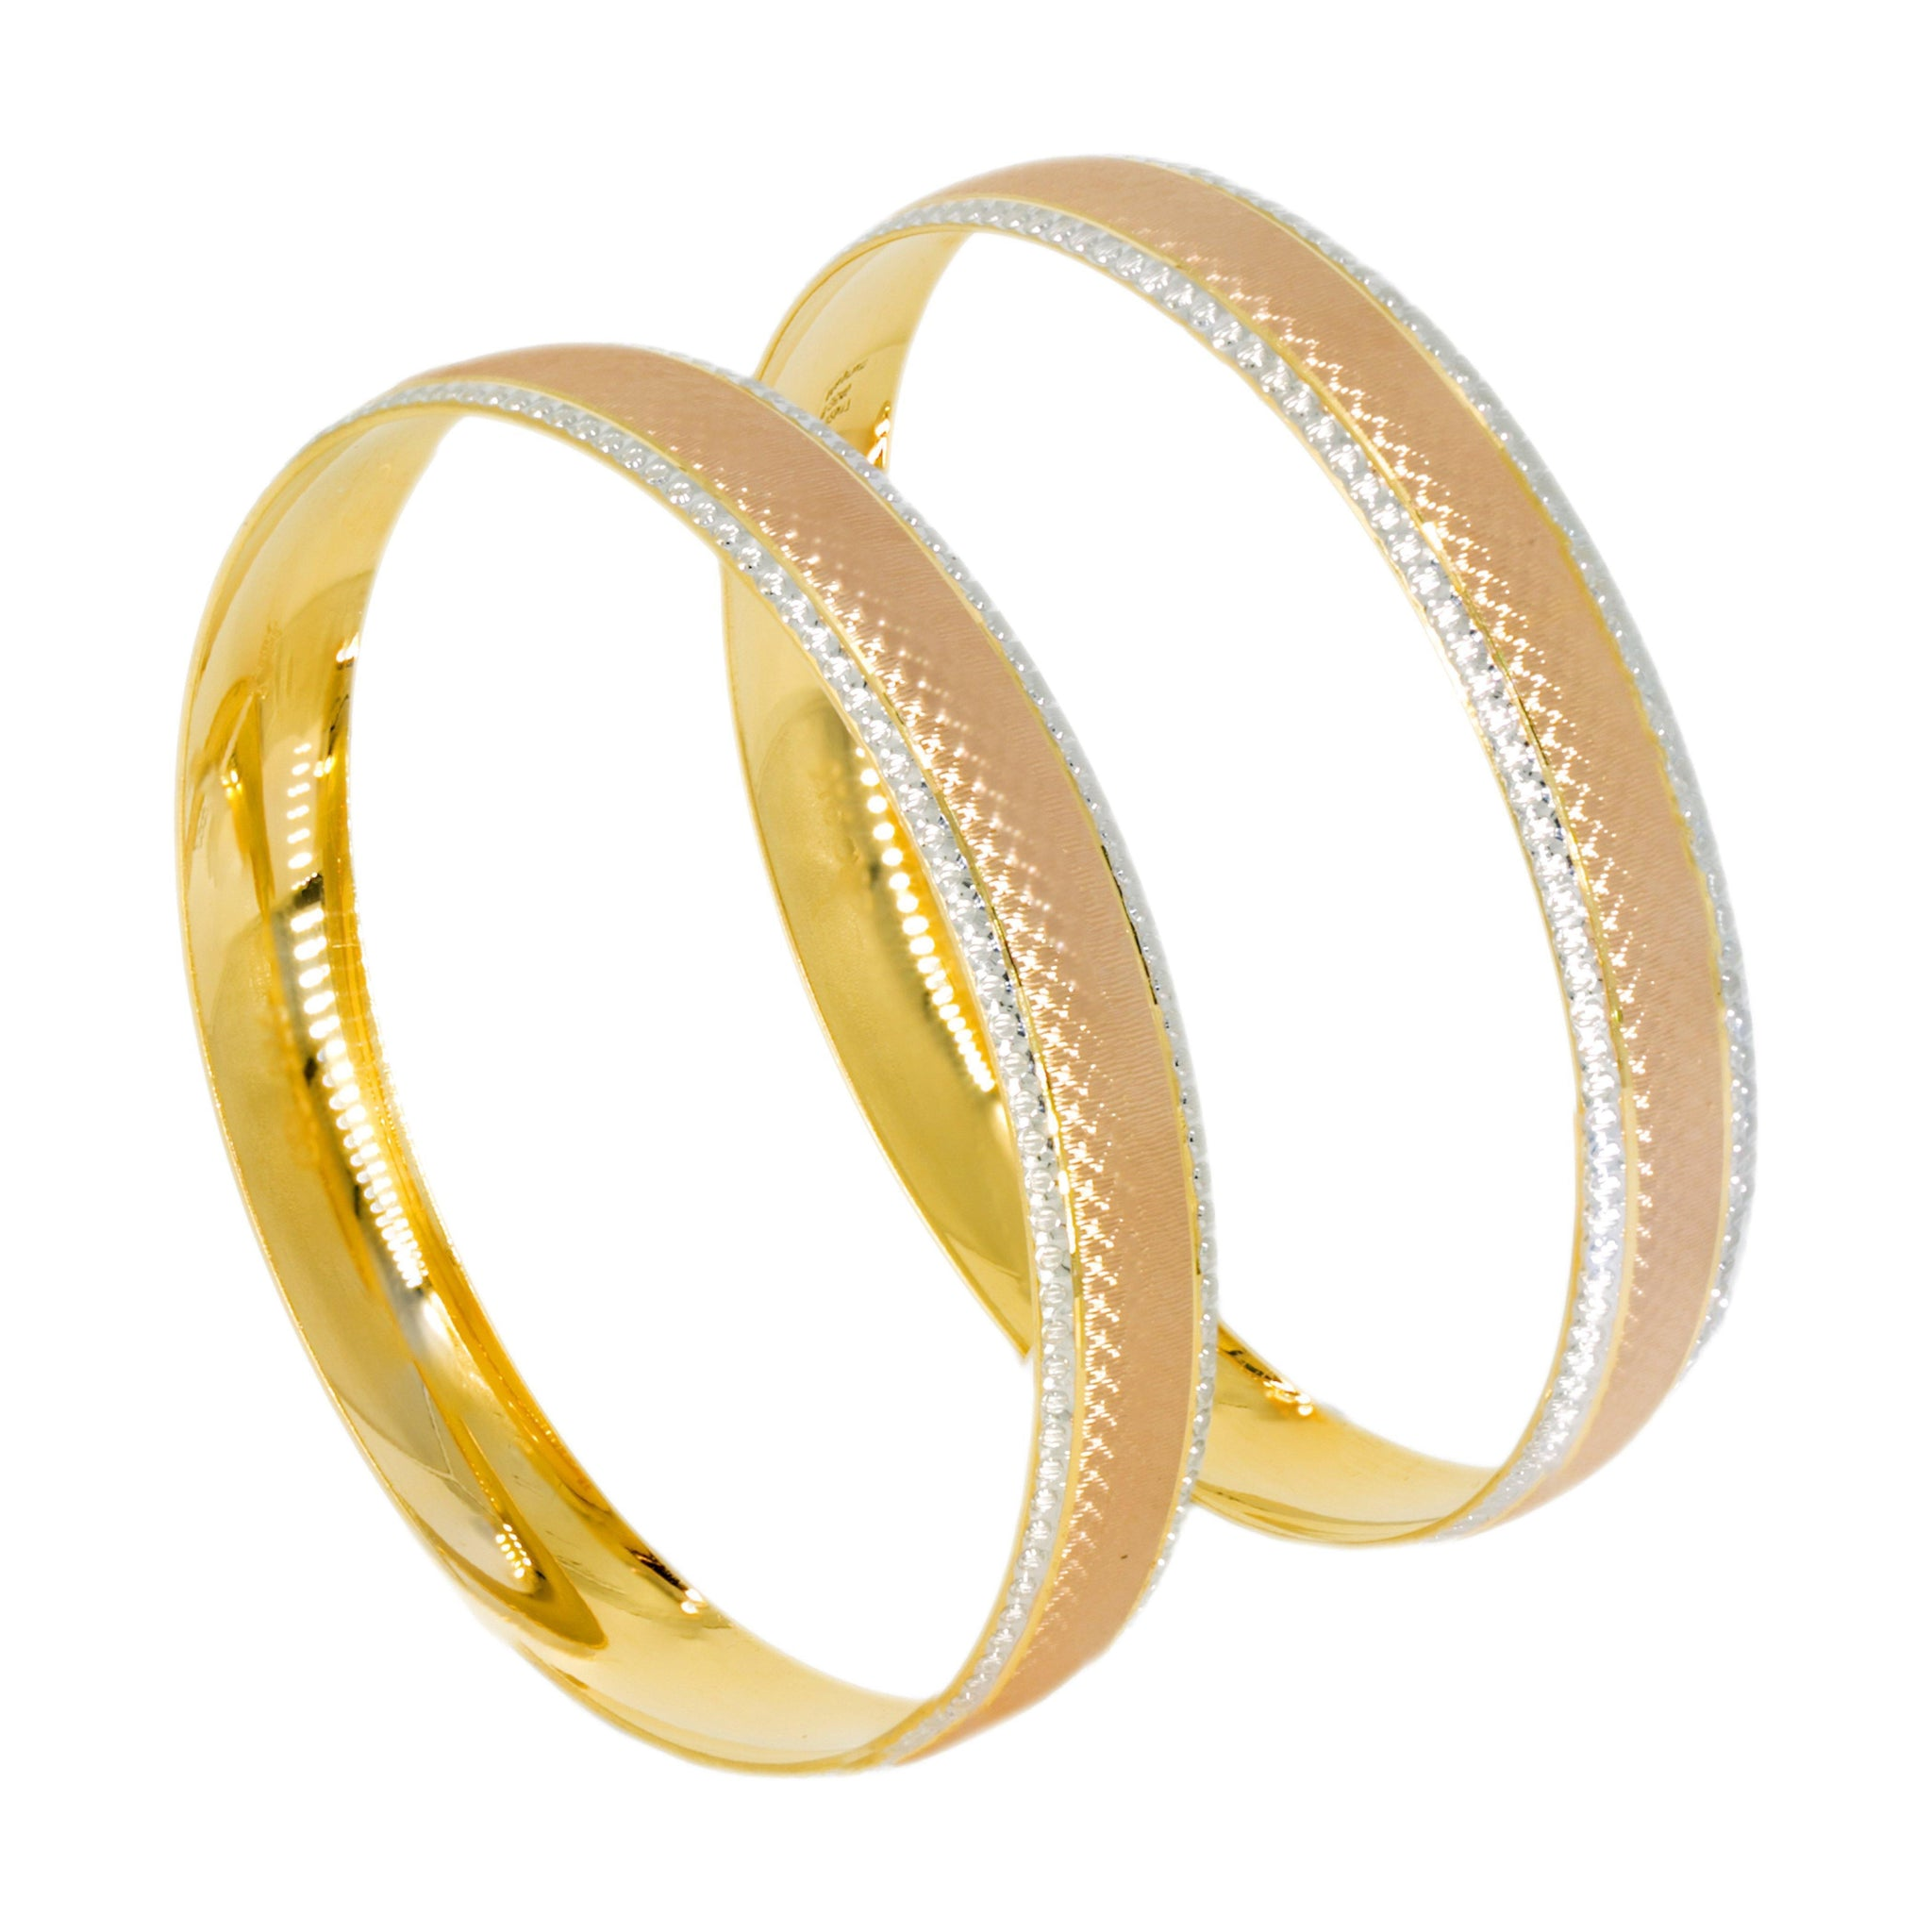 chand kolkata gold jewellery manik bangles jeweller shop